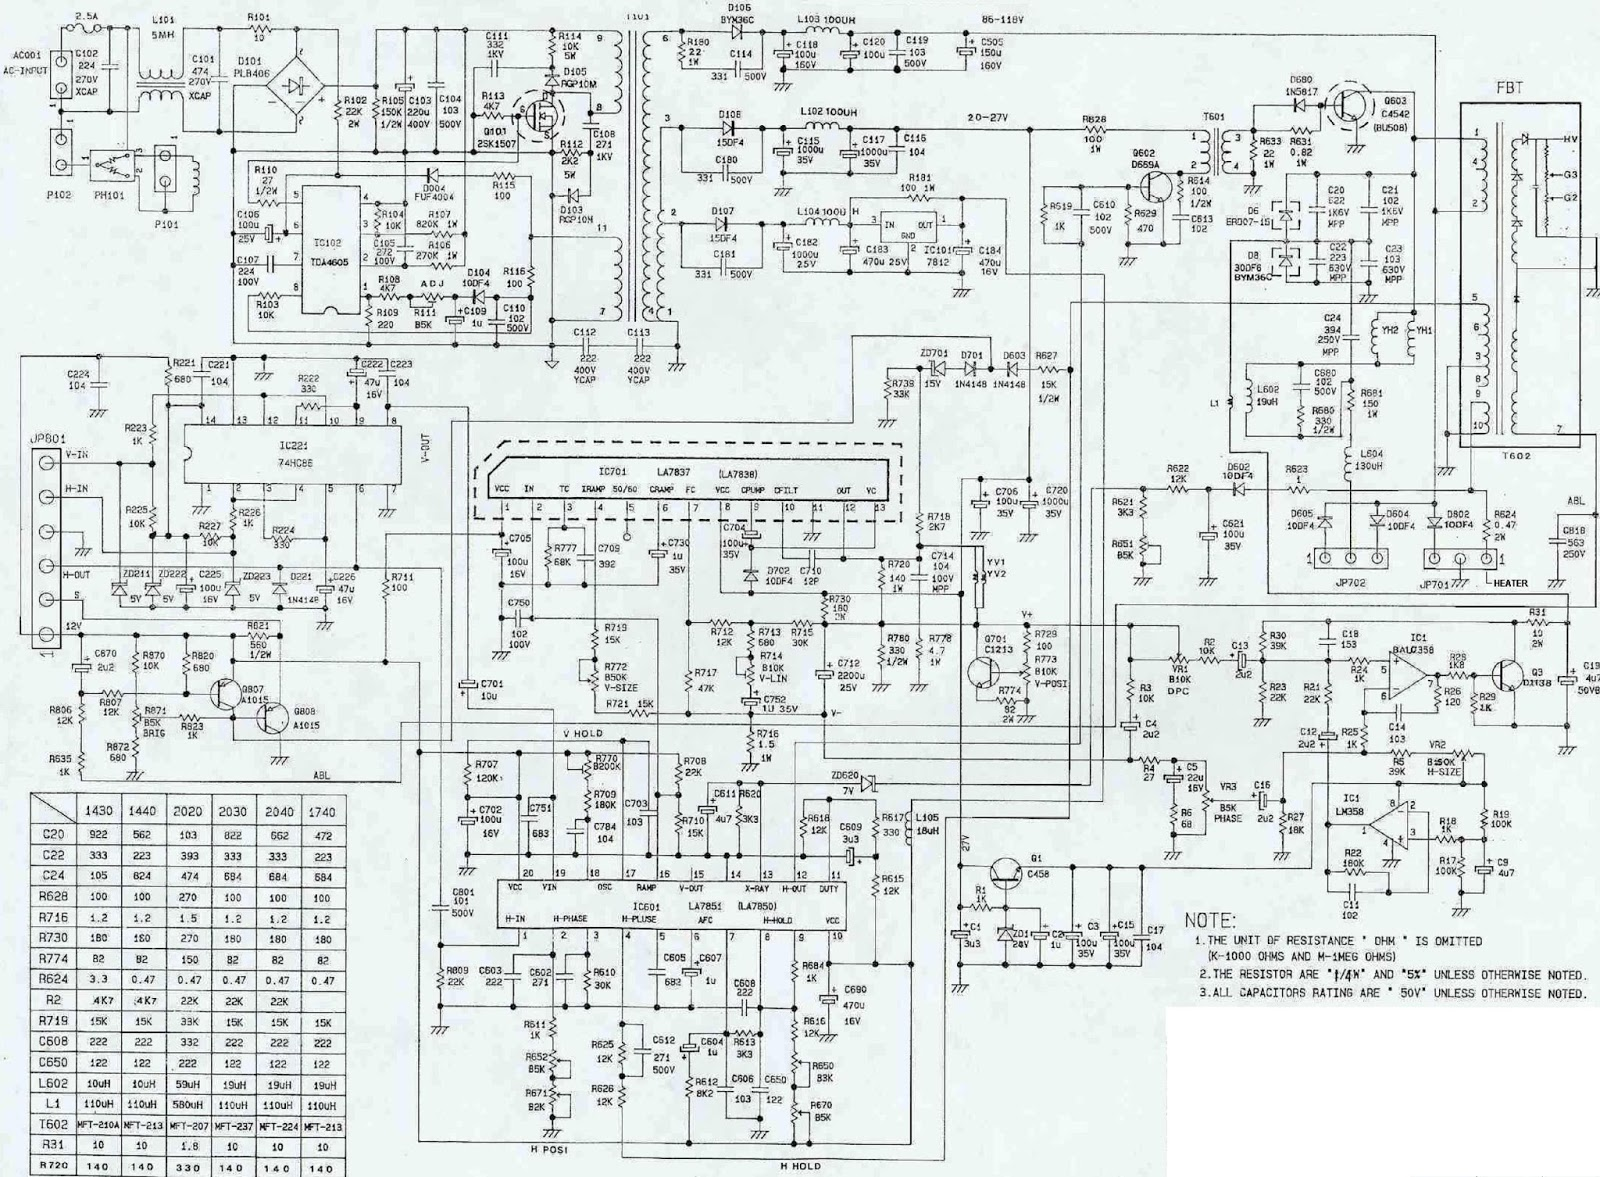 welcome sony playstation 3 schematic diagram logic circuit diagram schematic circuit diagram  [ 1600 x 1177 Pixel ]